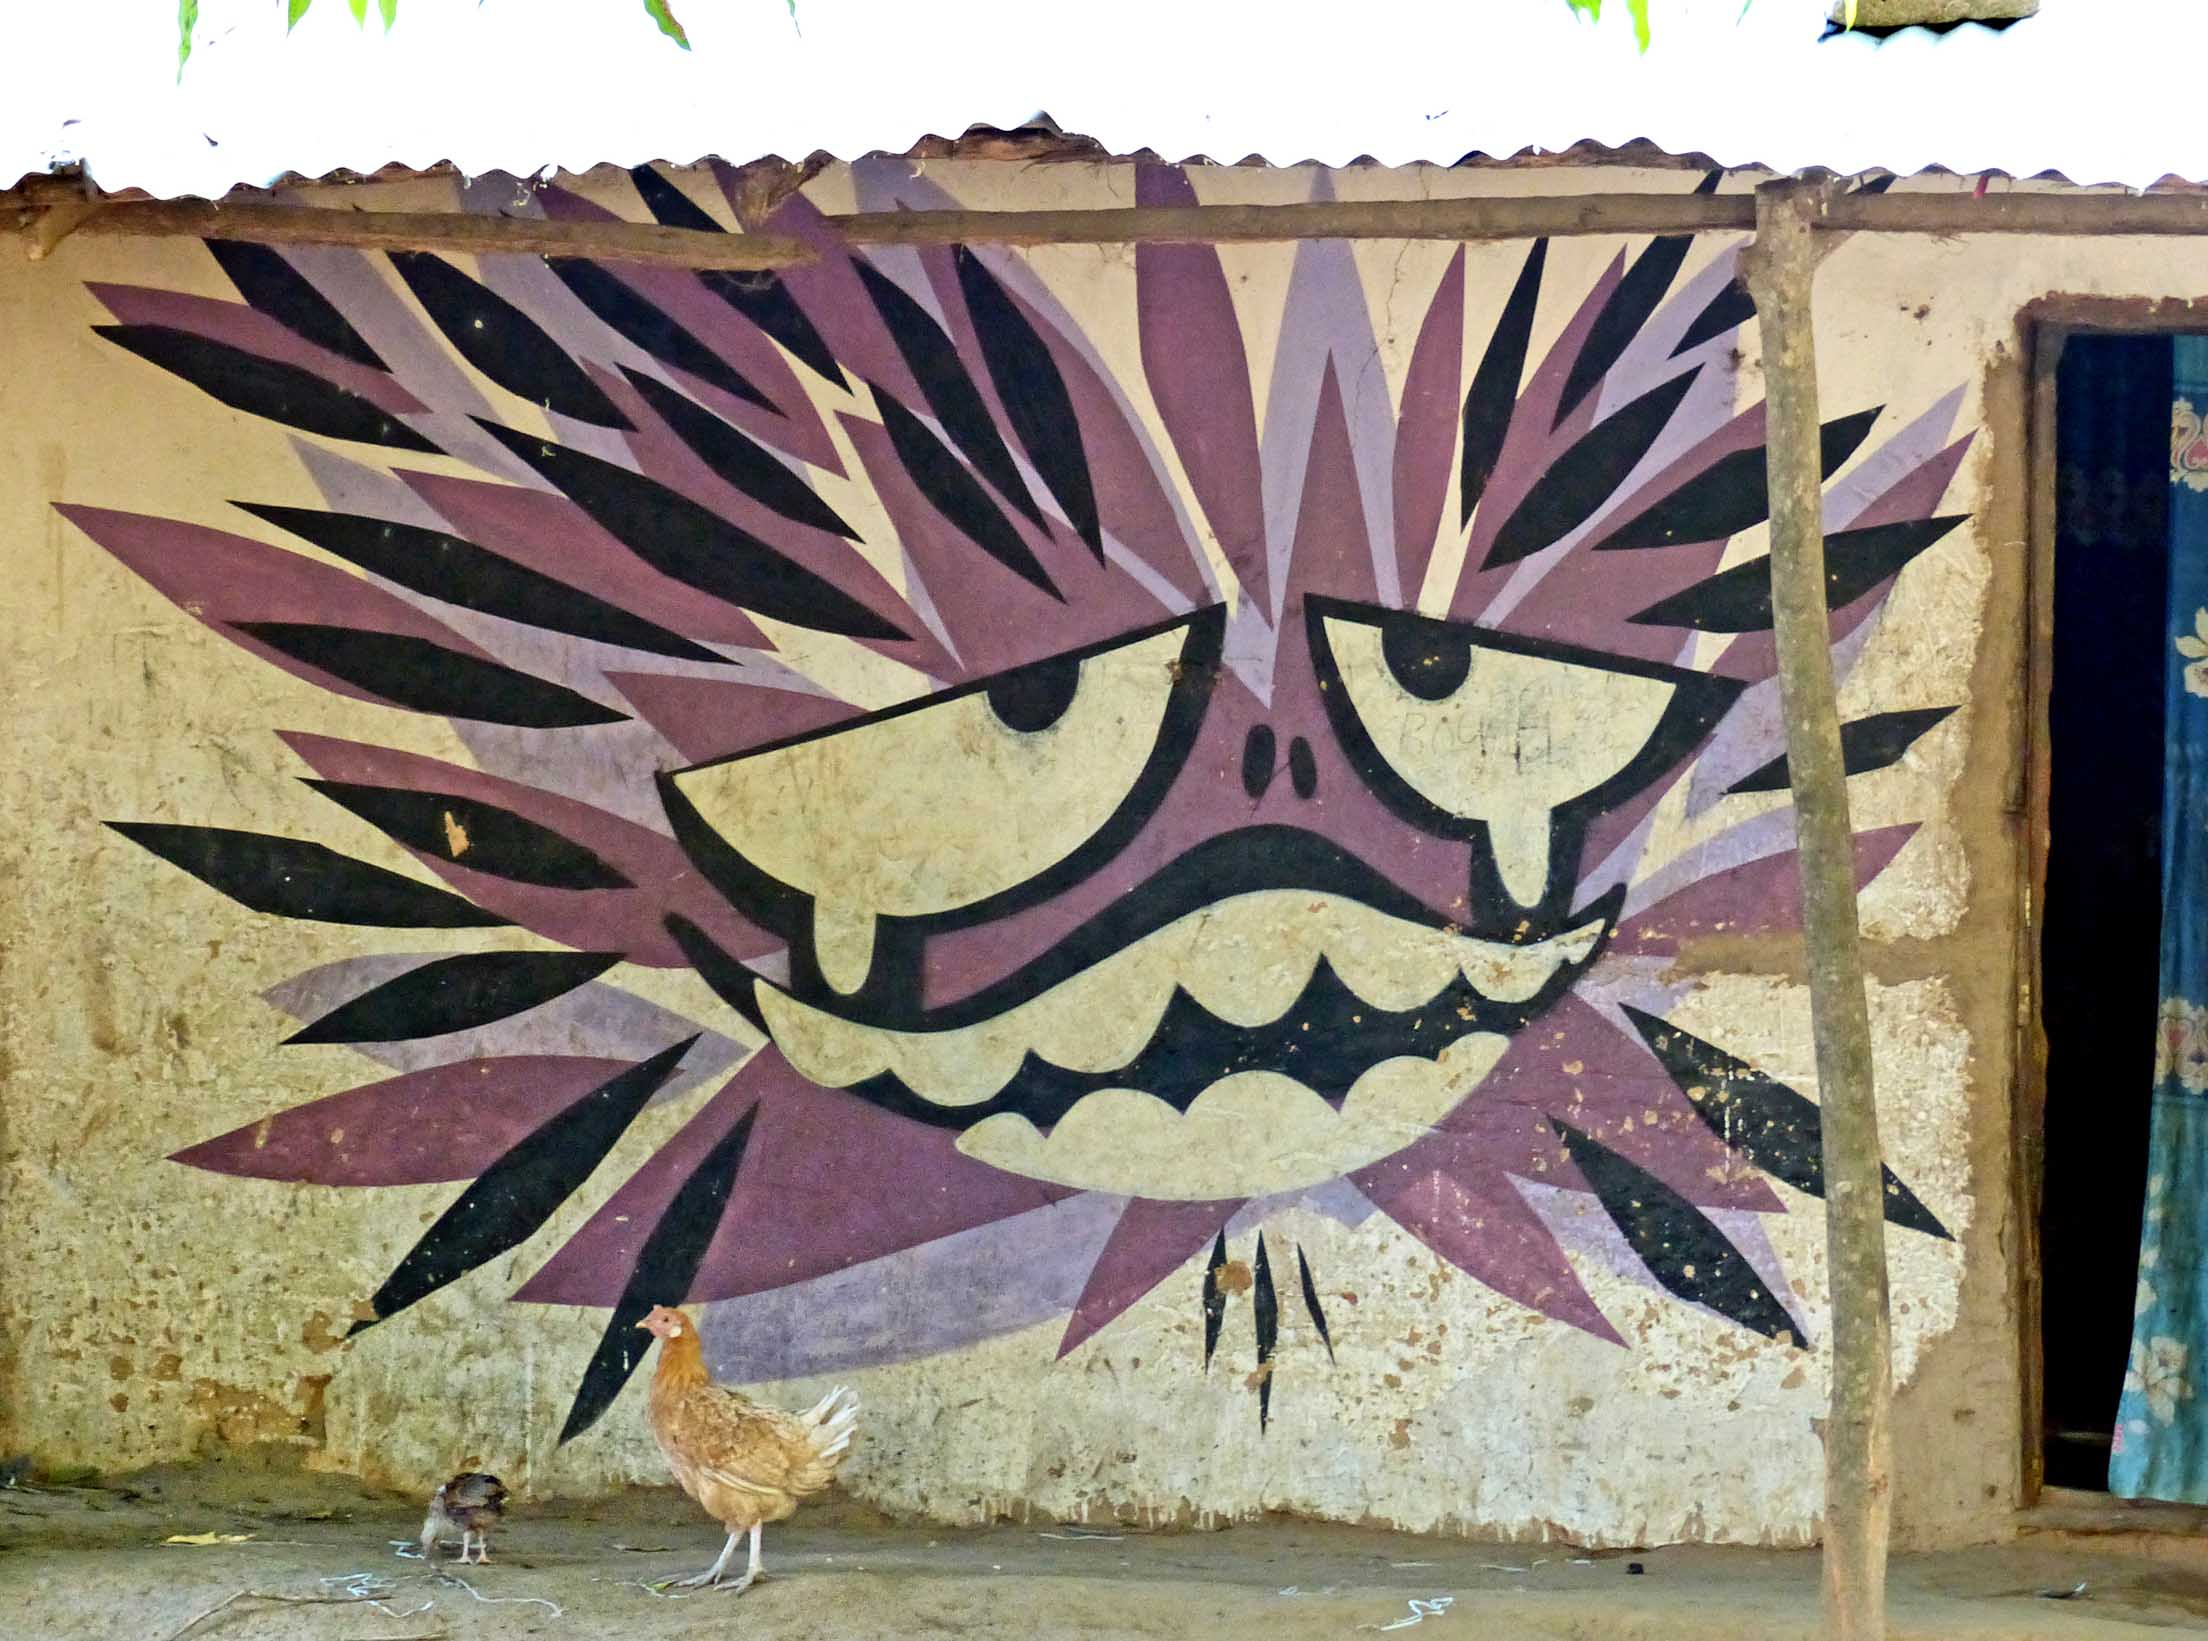 Mural of mask with chickens in front of the wall